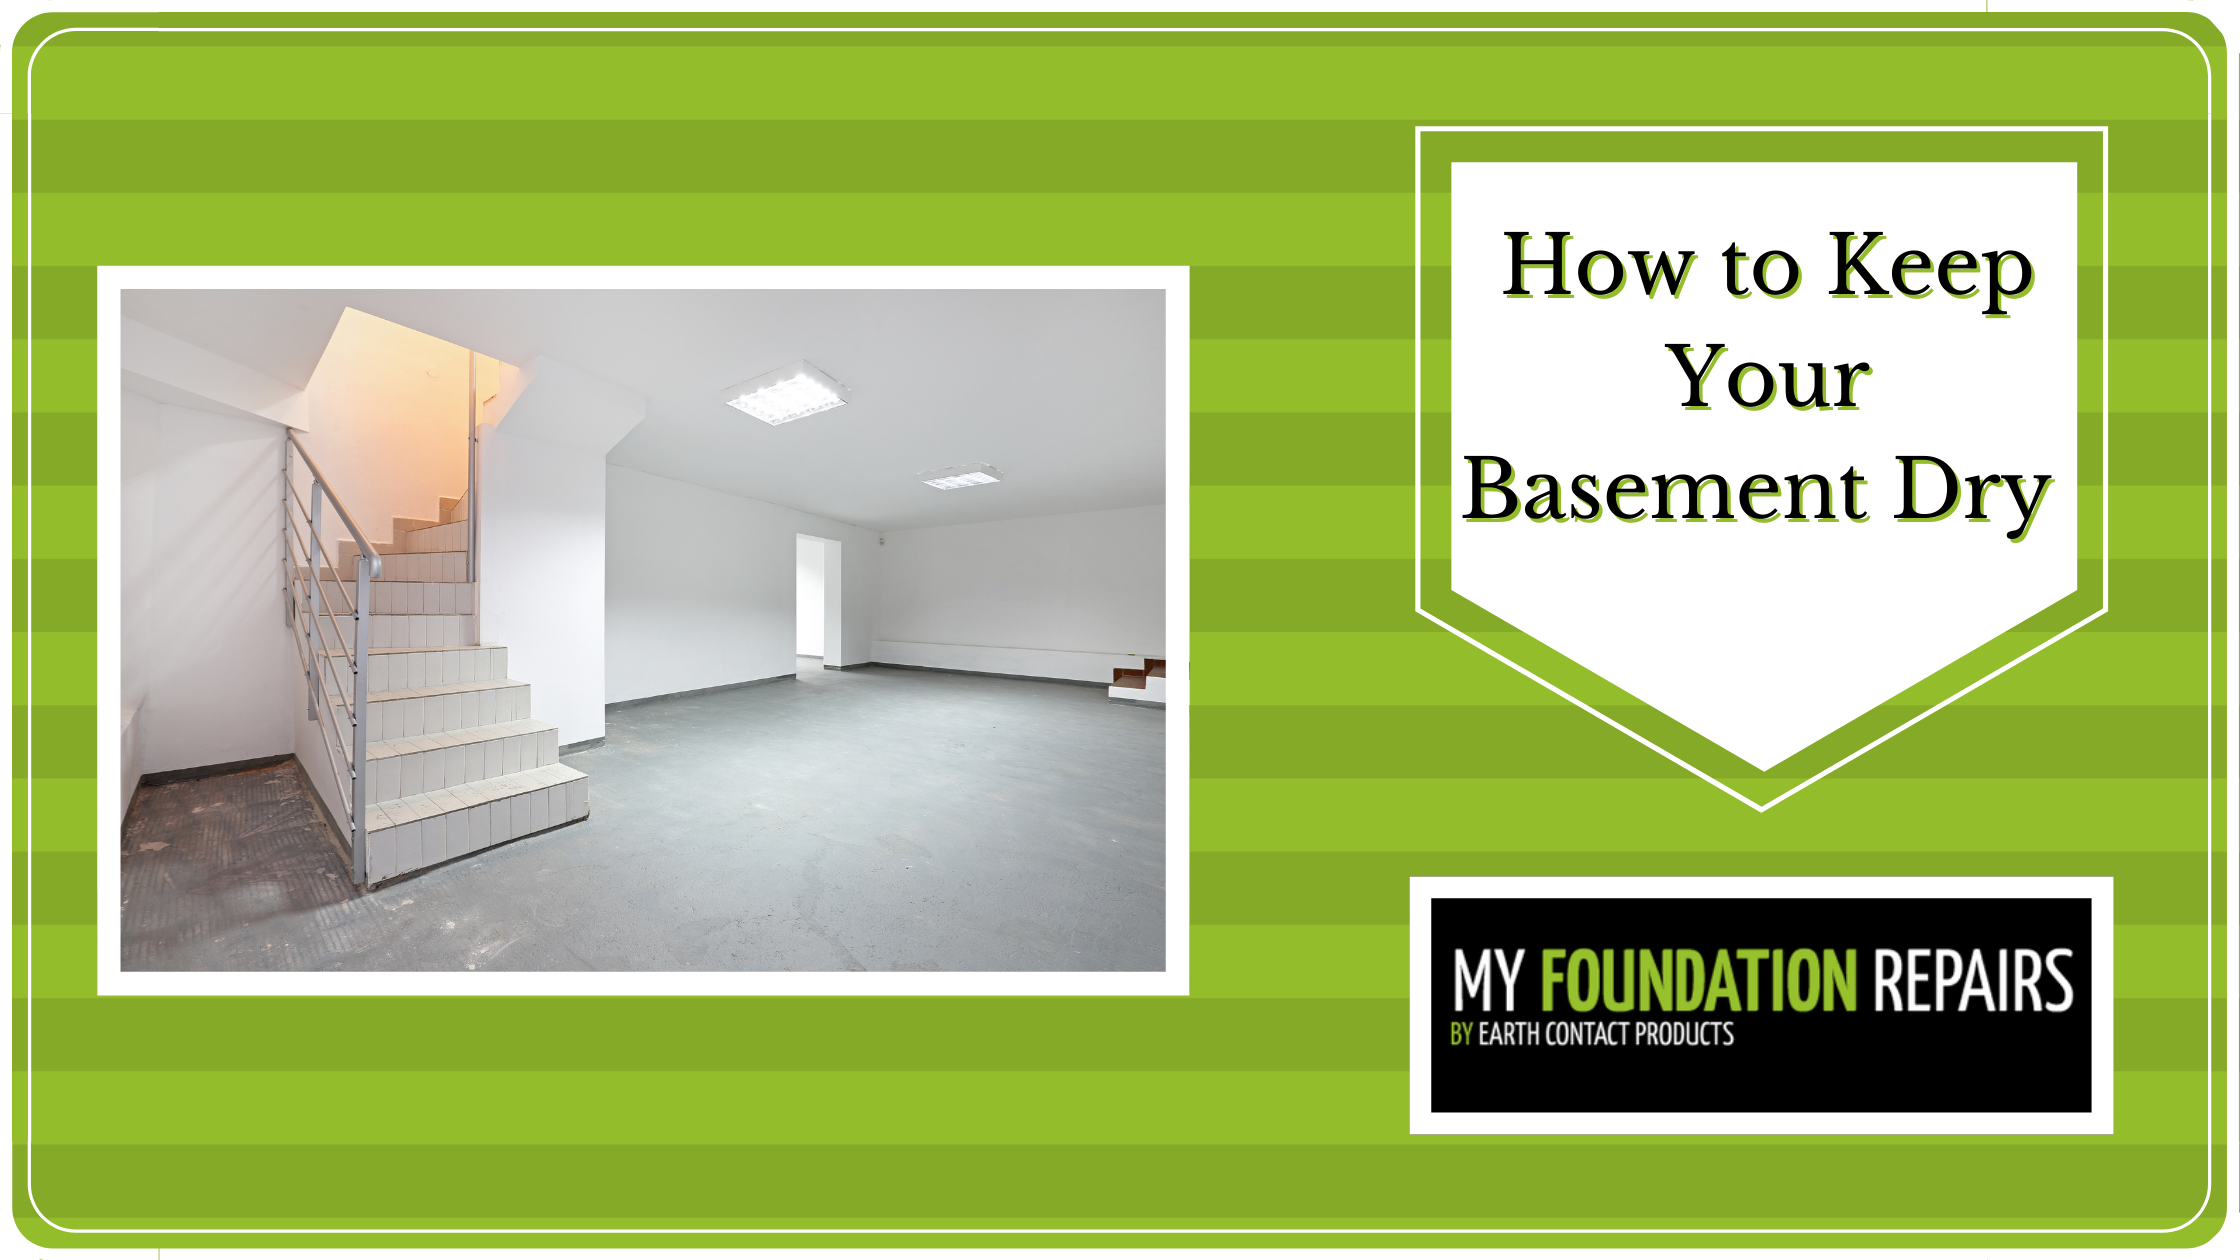 Ways to Keep Your Basement Dry